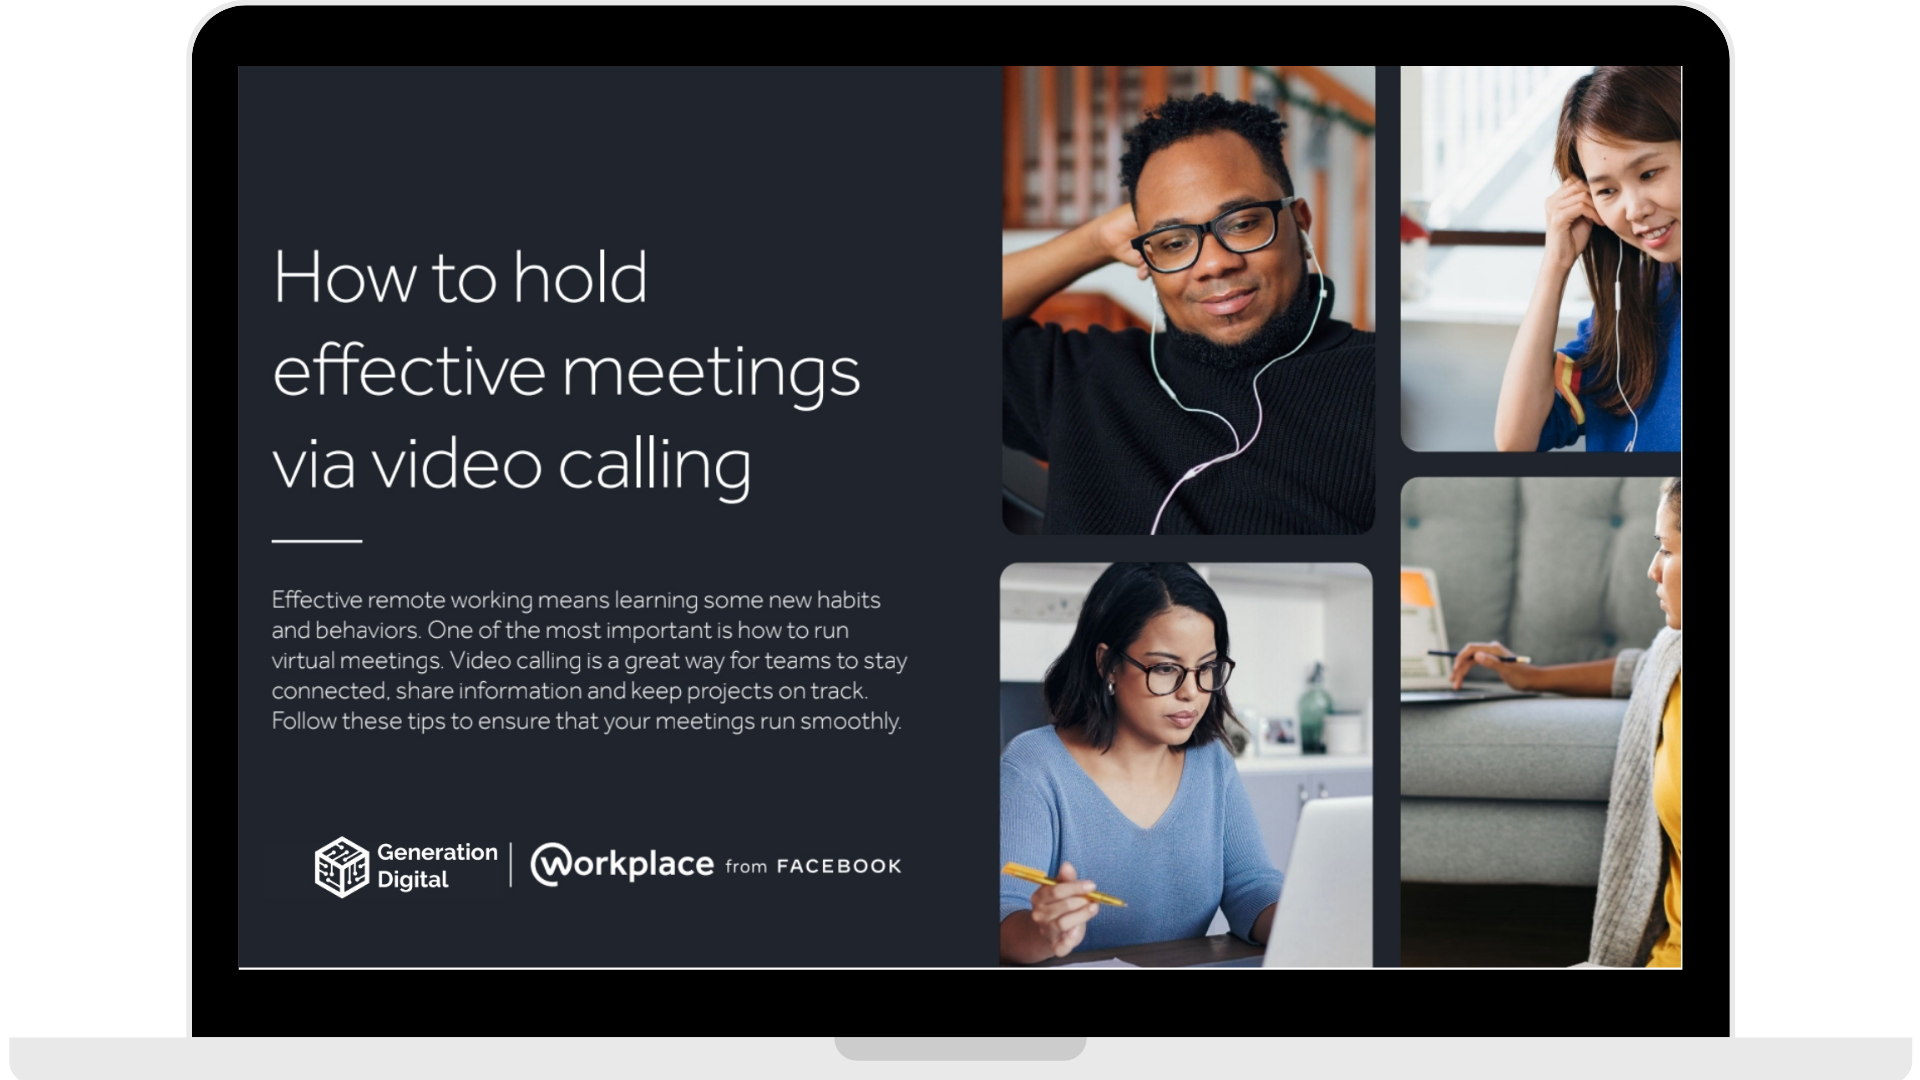 WPF - How to hold effective meetings via video calling - Laptop - Transparent